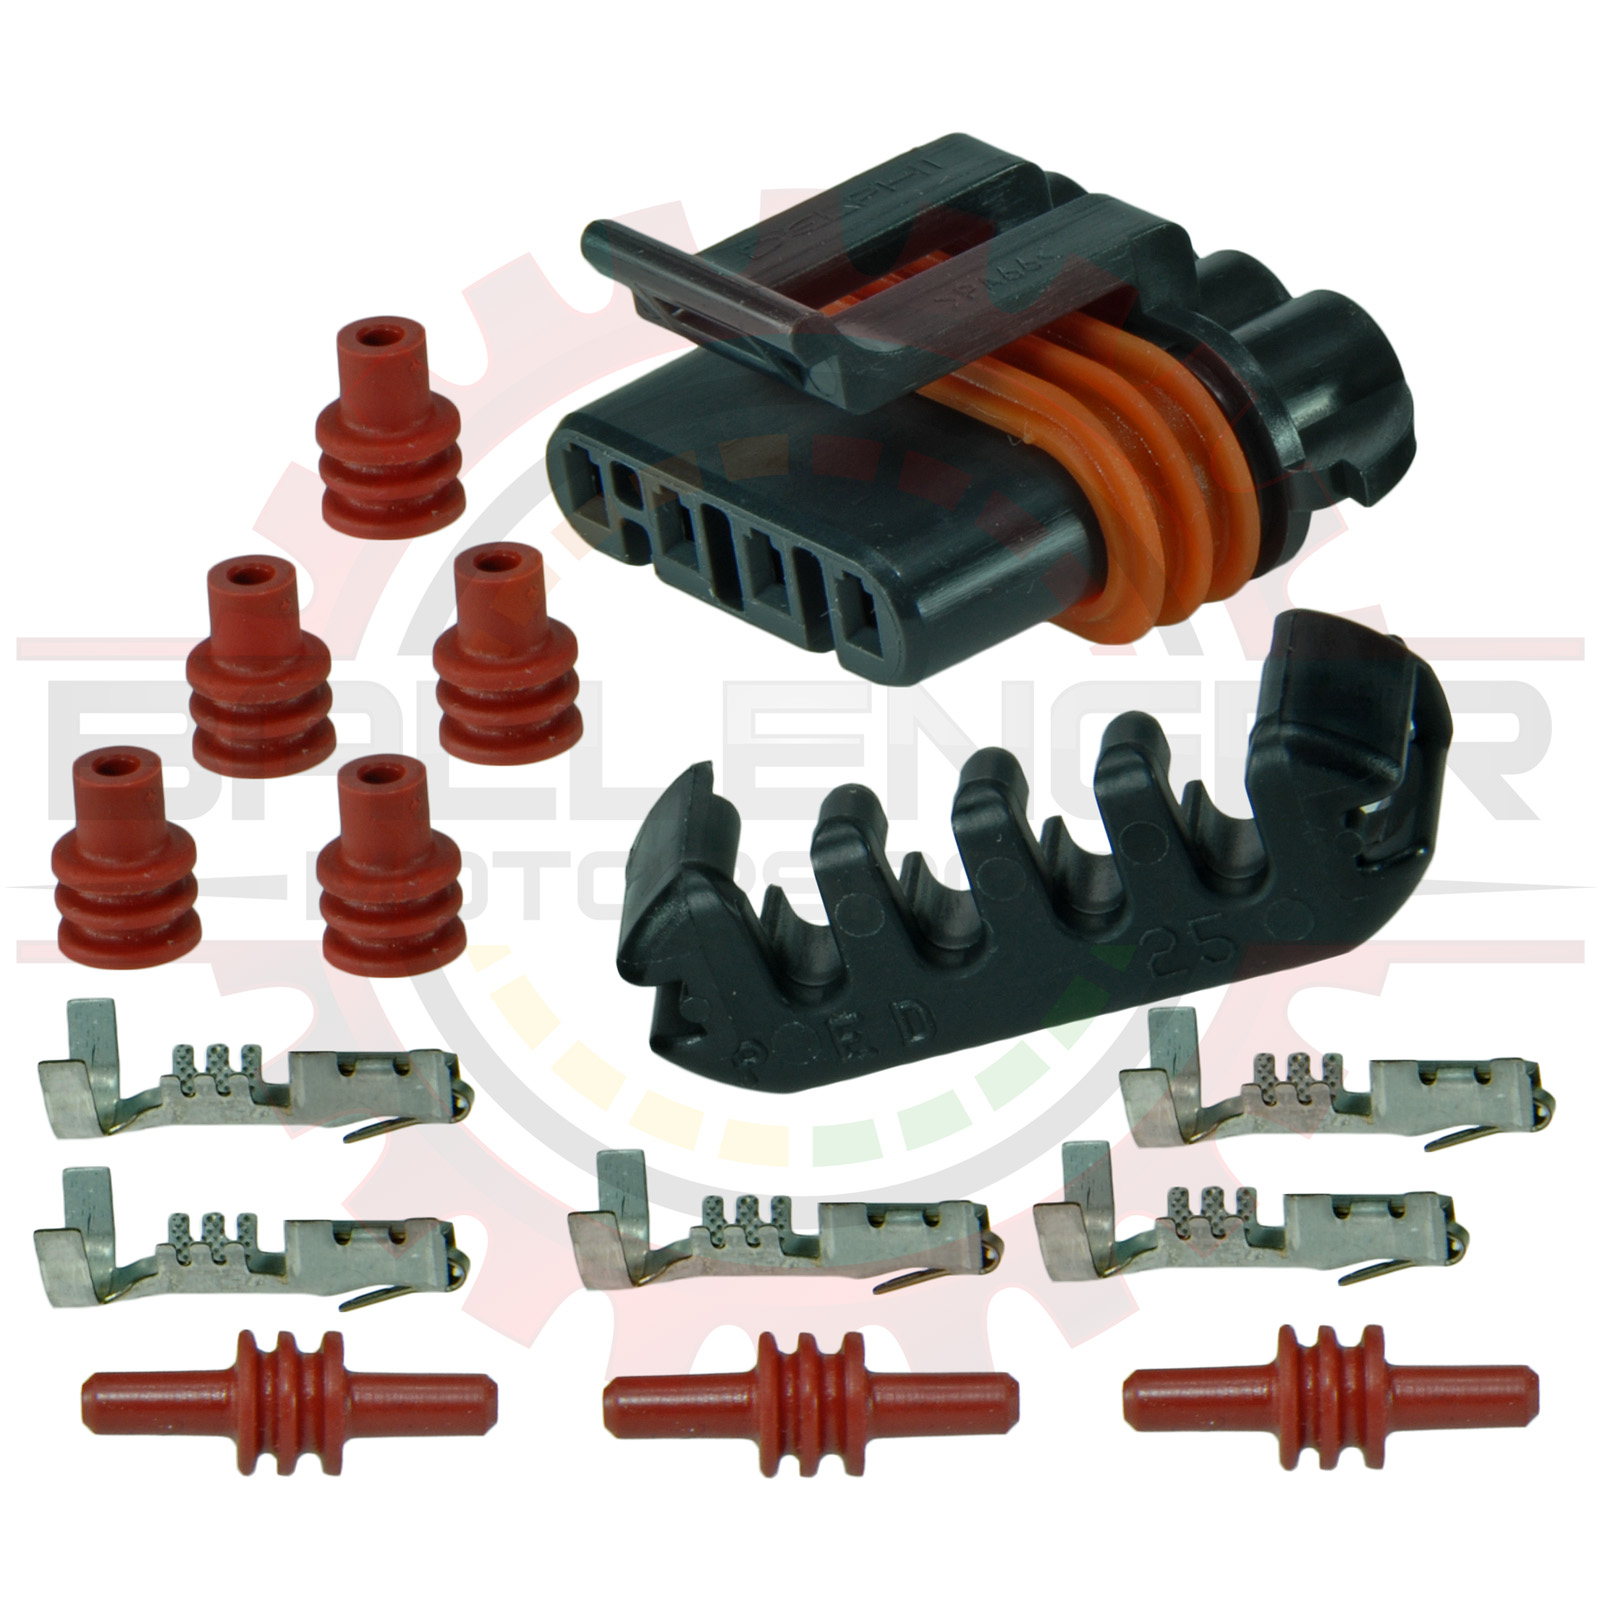 GM Delphi / Packard - 4 way Metri-Pack 150 Connector Plug Kit for GM  Alternator, Jaguar Ignition, Polaris Fuel Pump